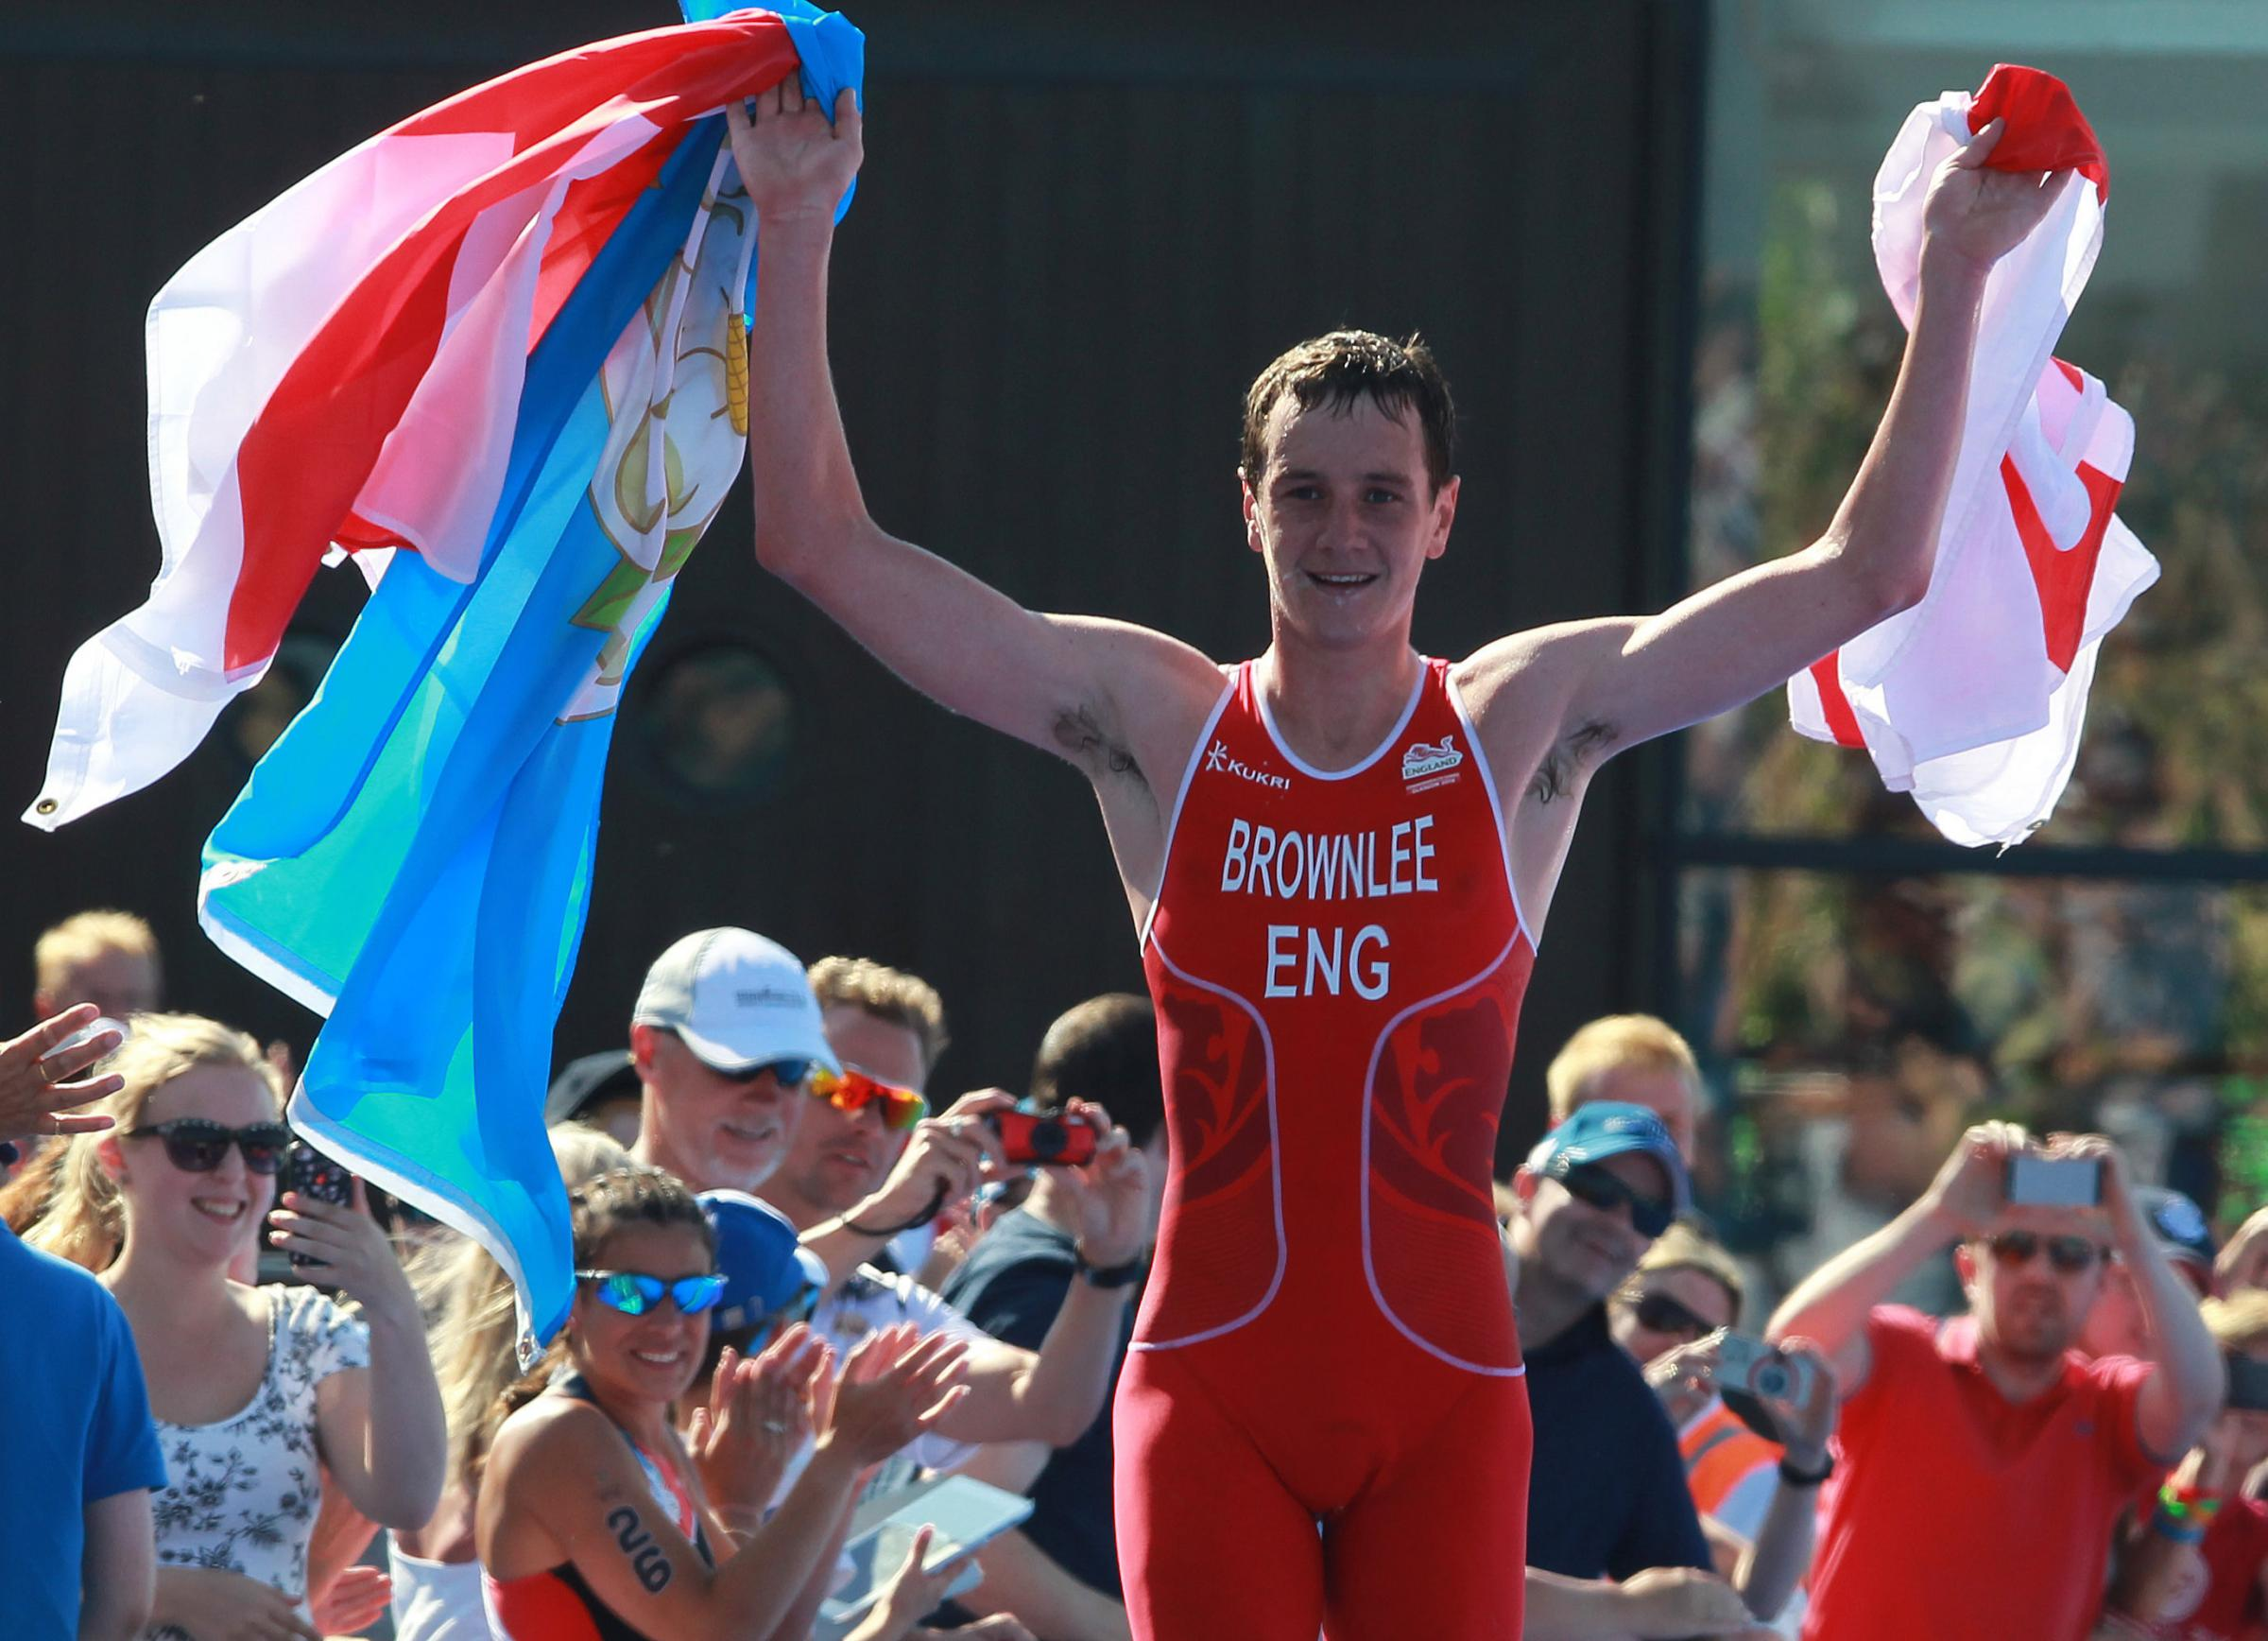 Golden boy Brownlee hungry for more glory